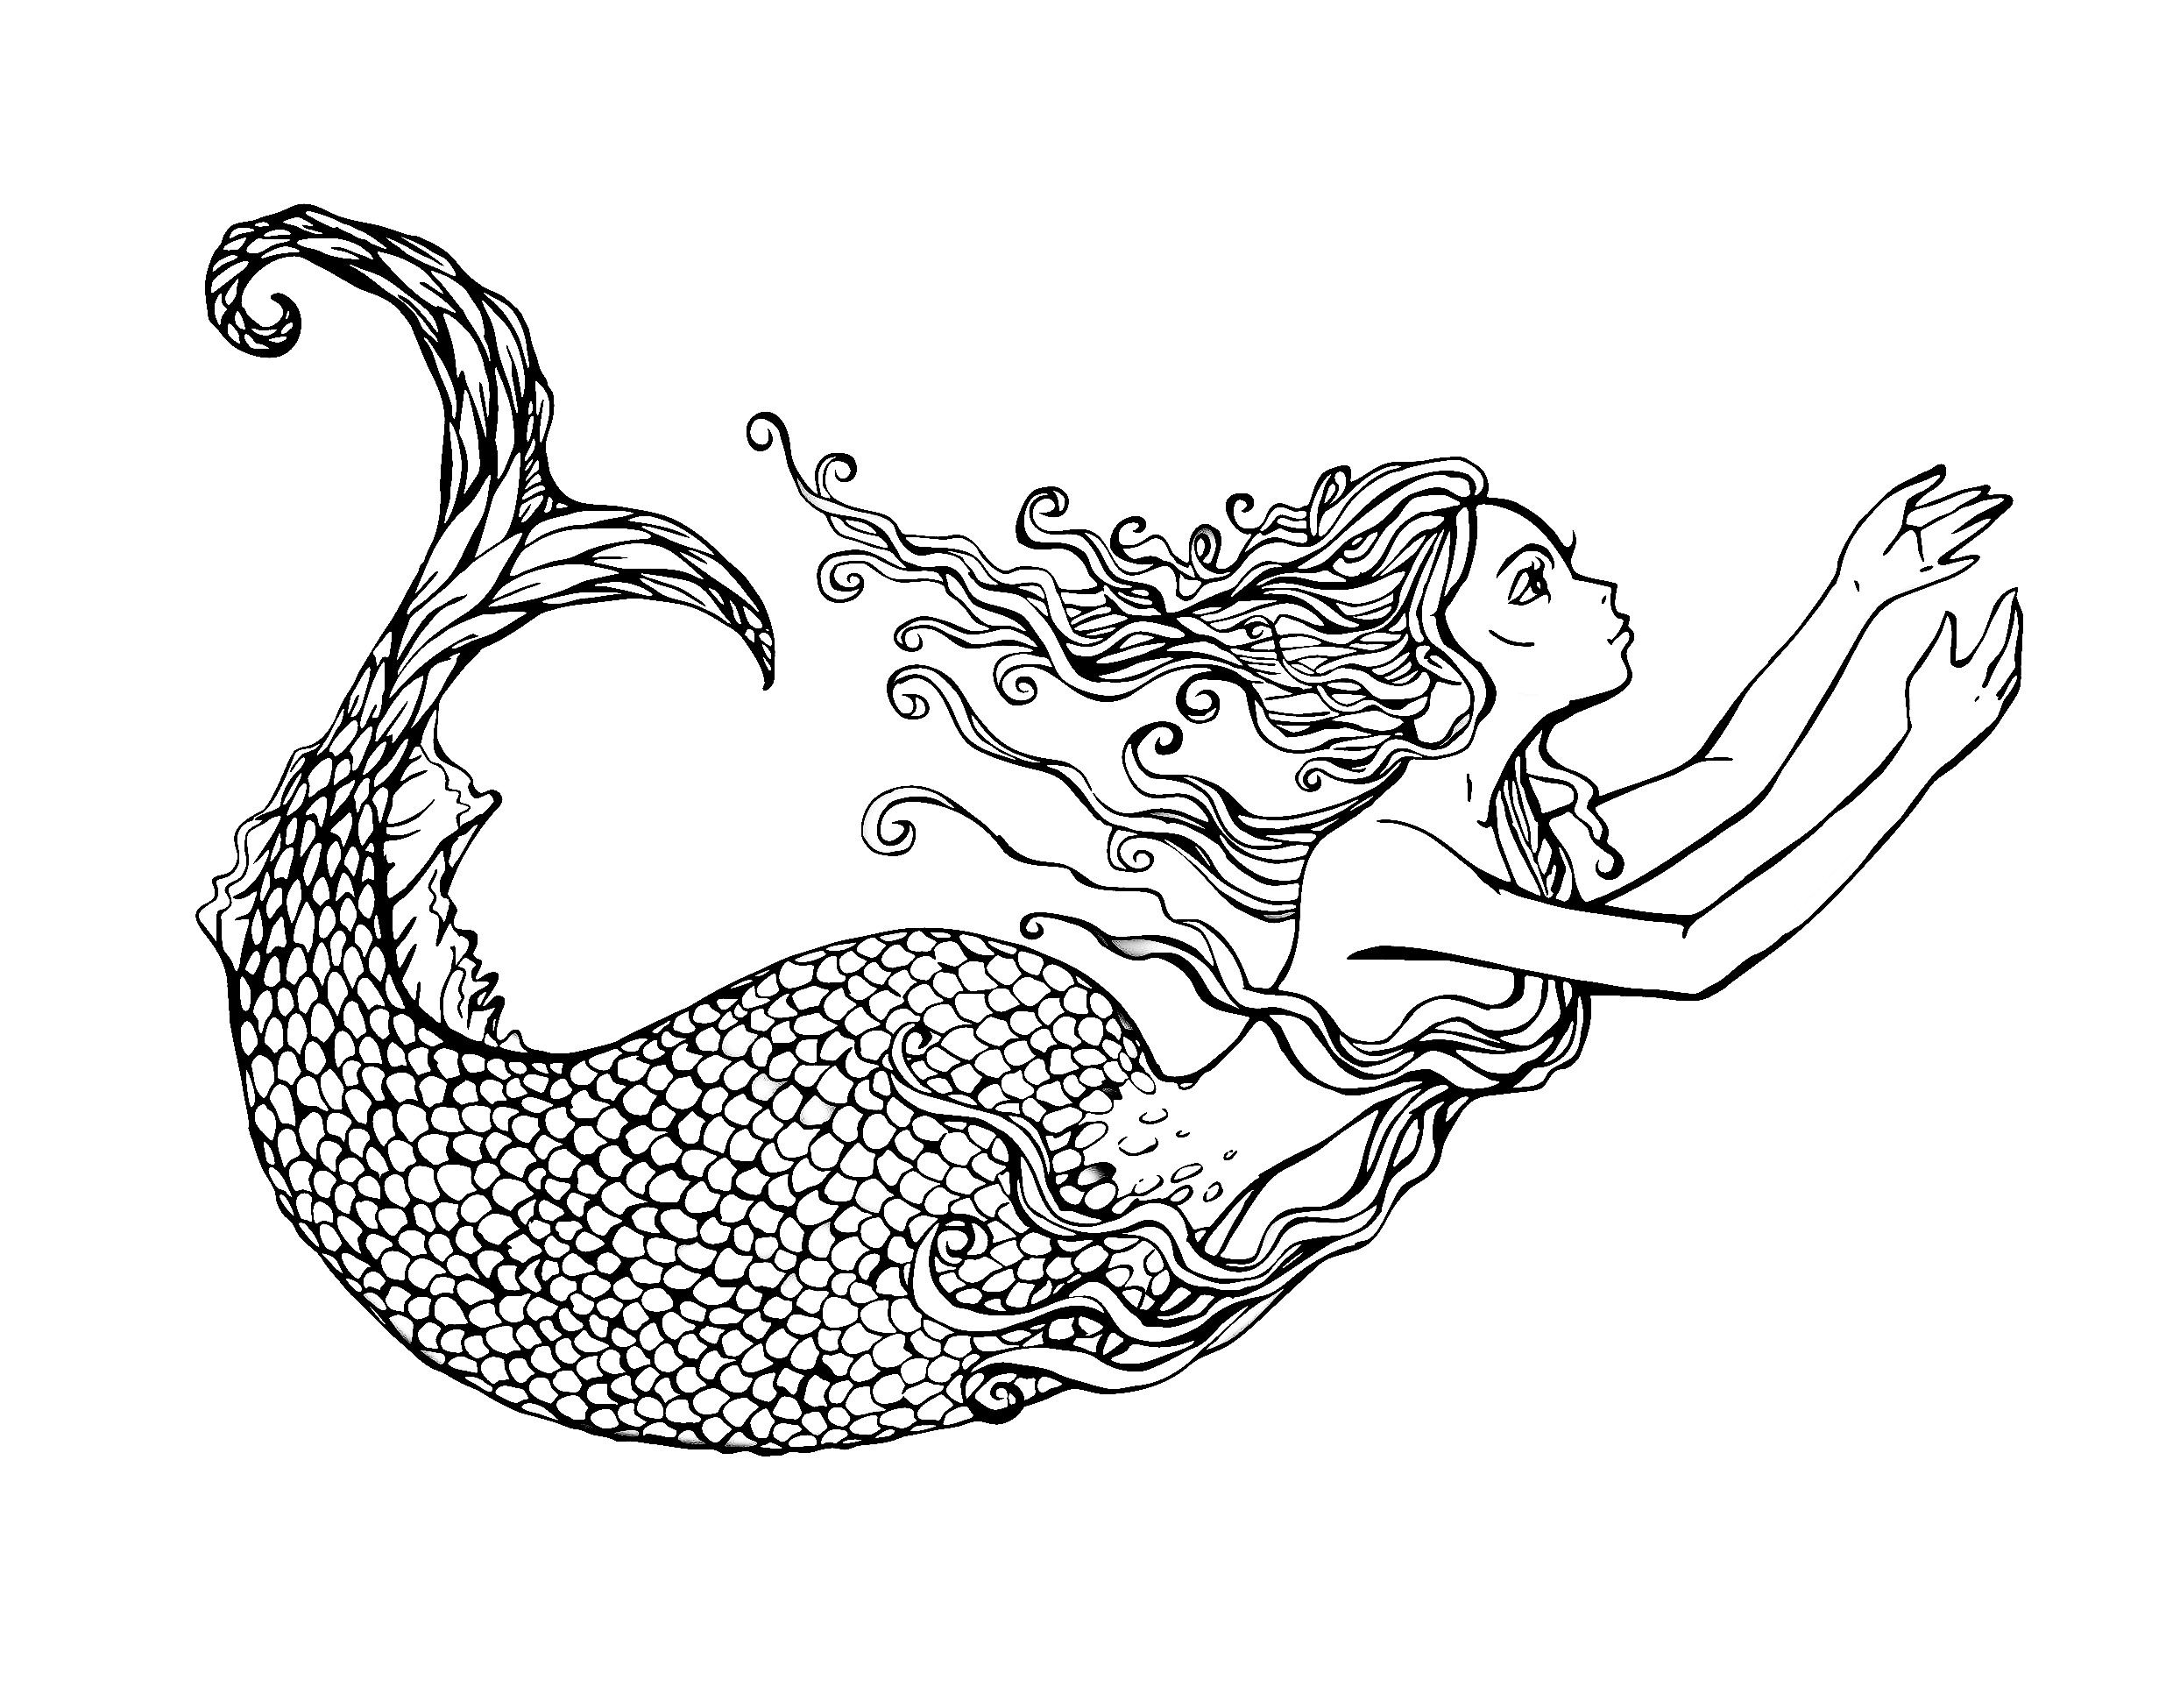 free coloring page coloring-adult-swimming-mermaid-by-lian2011